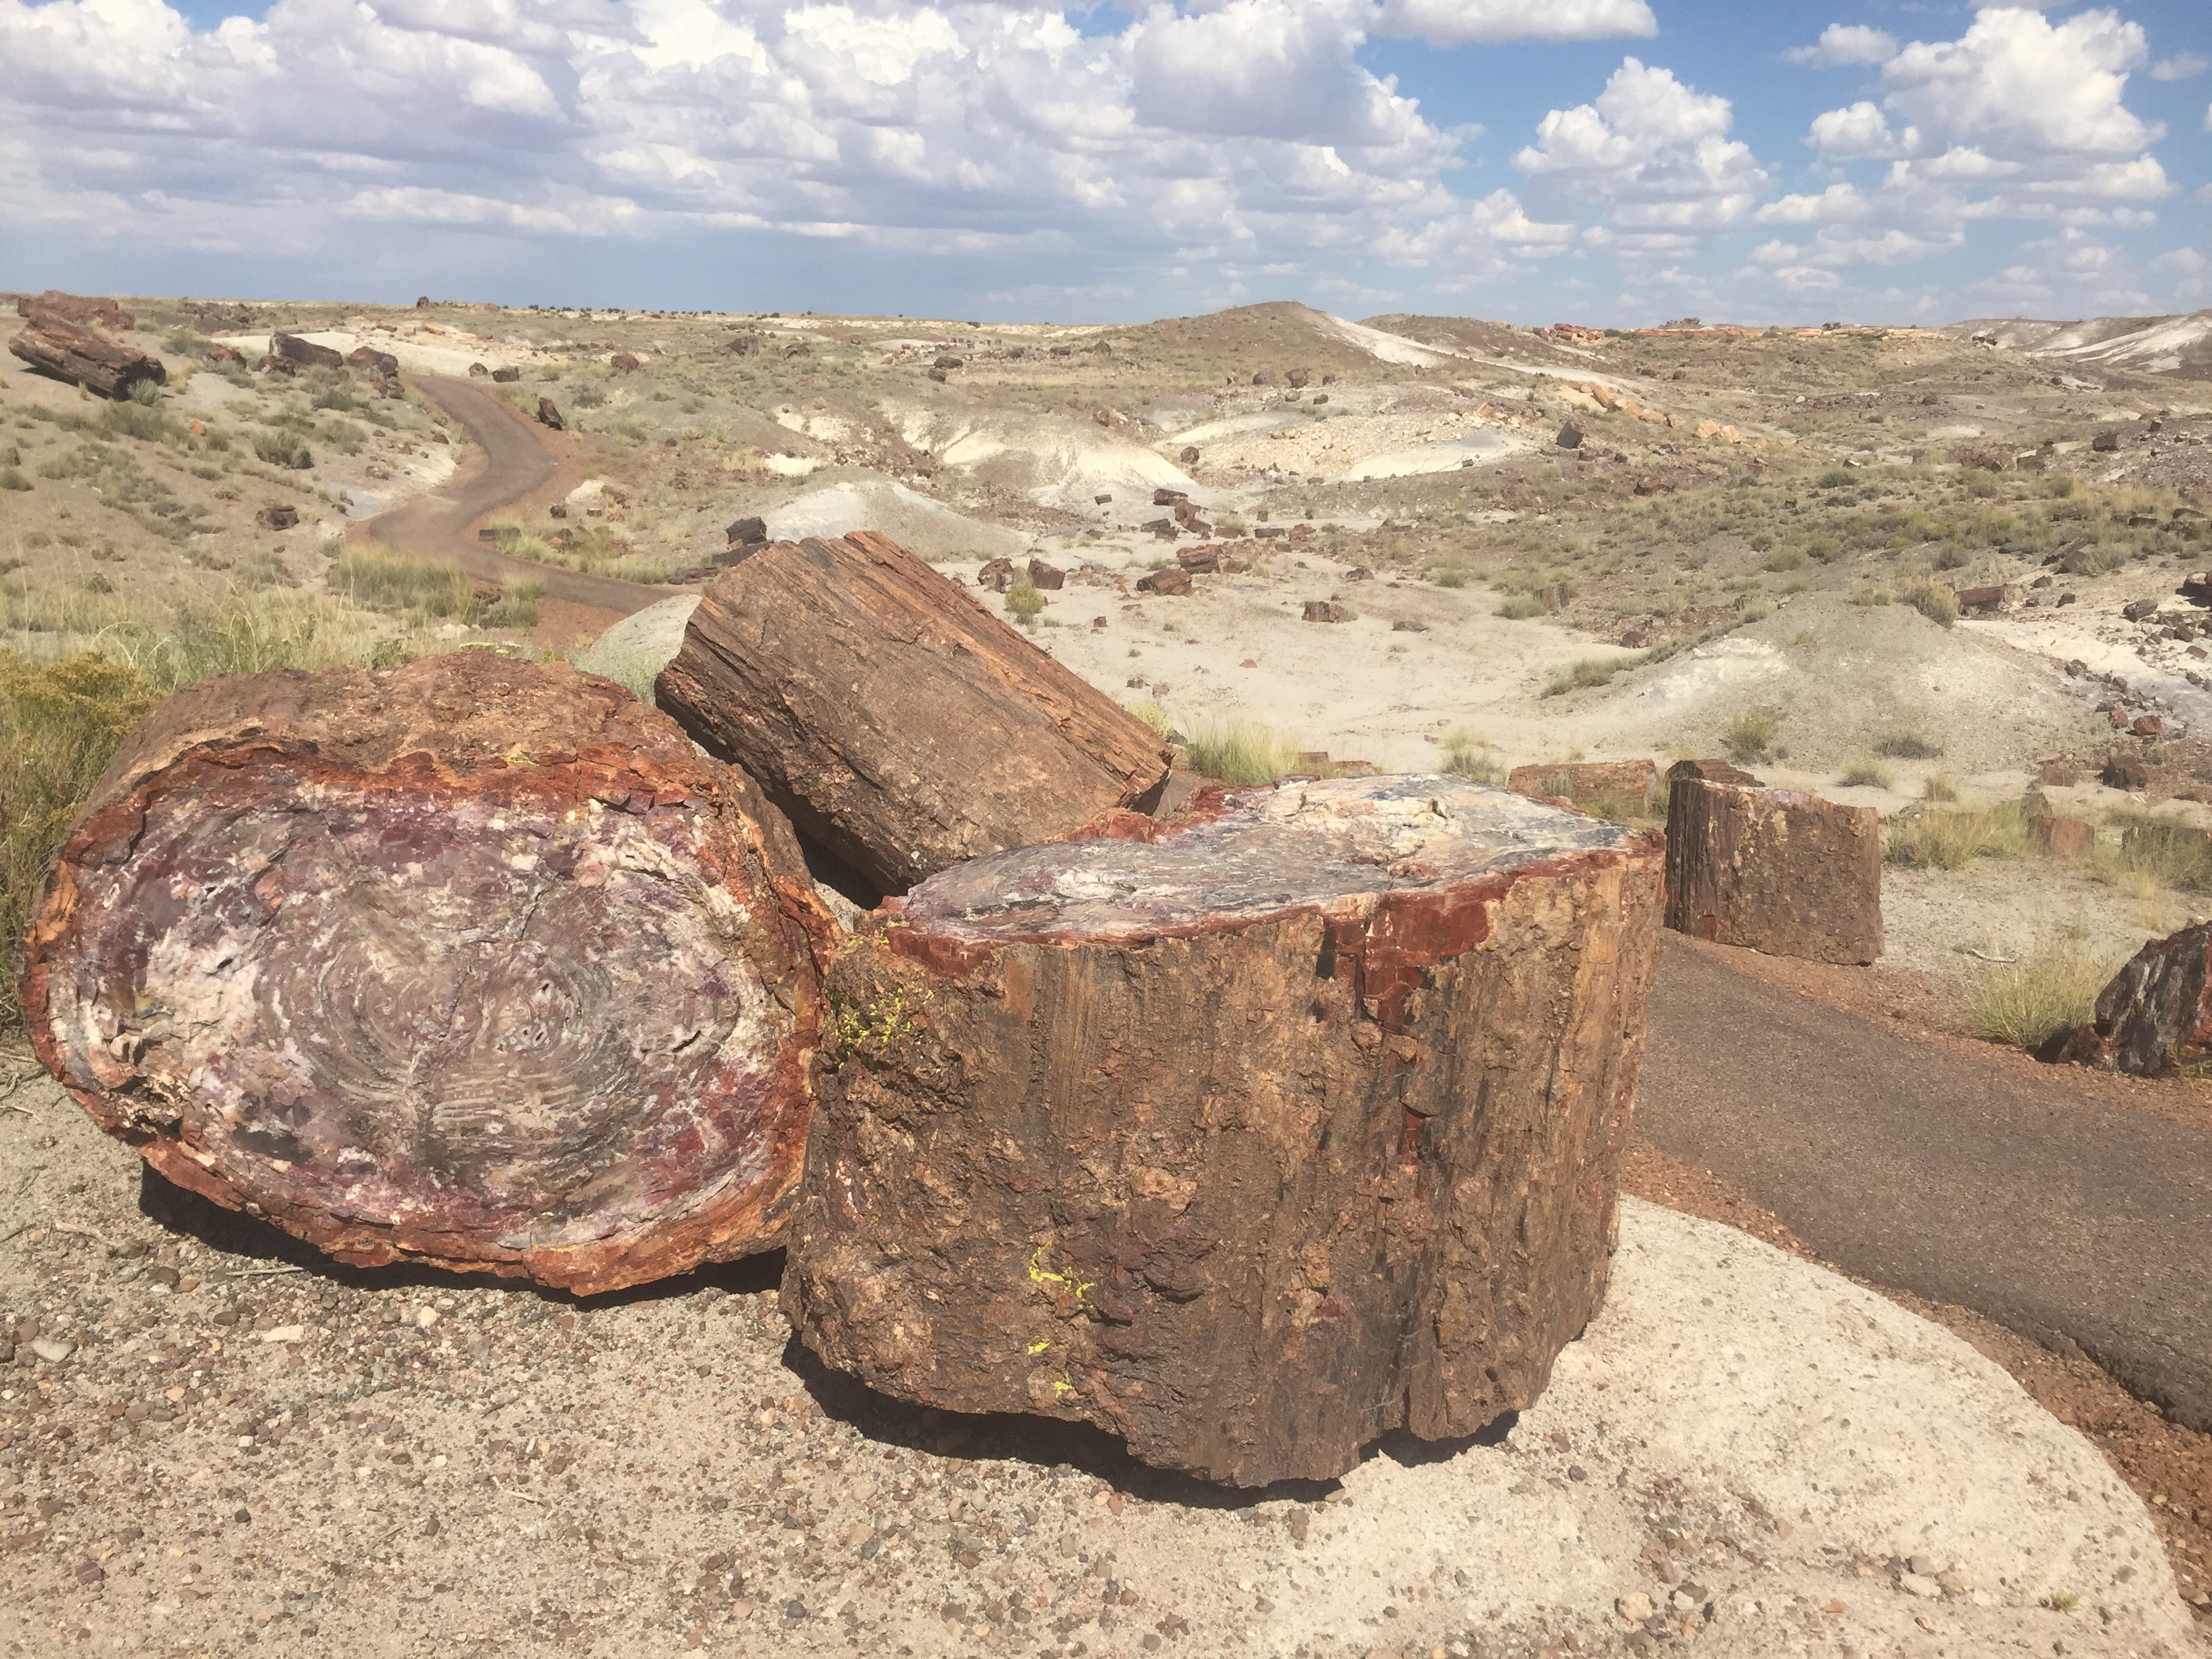 PETRIFIED FOREST: The Ultimate Road Trip Stop